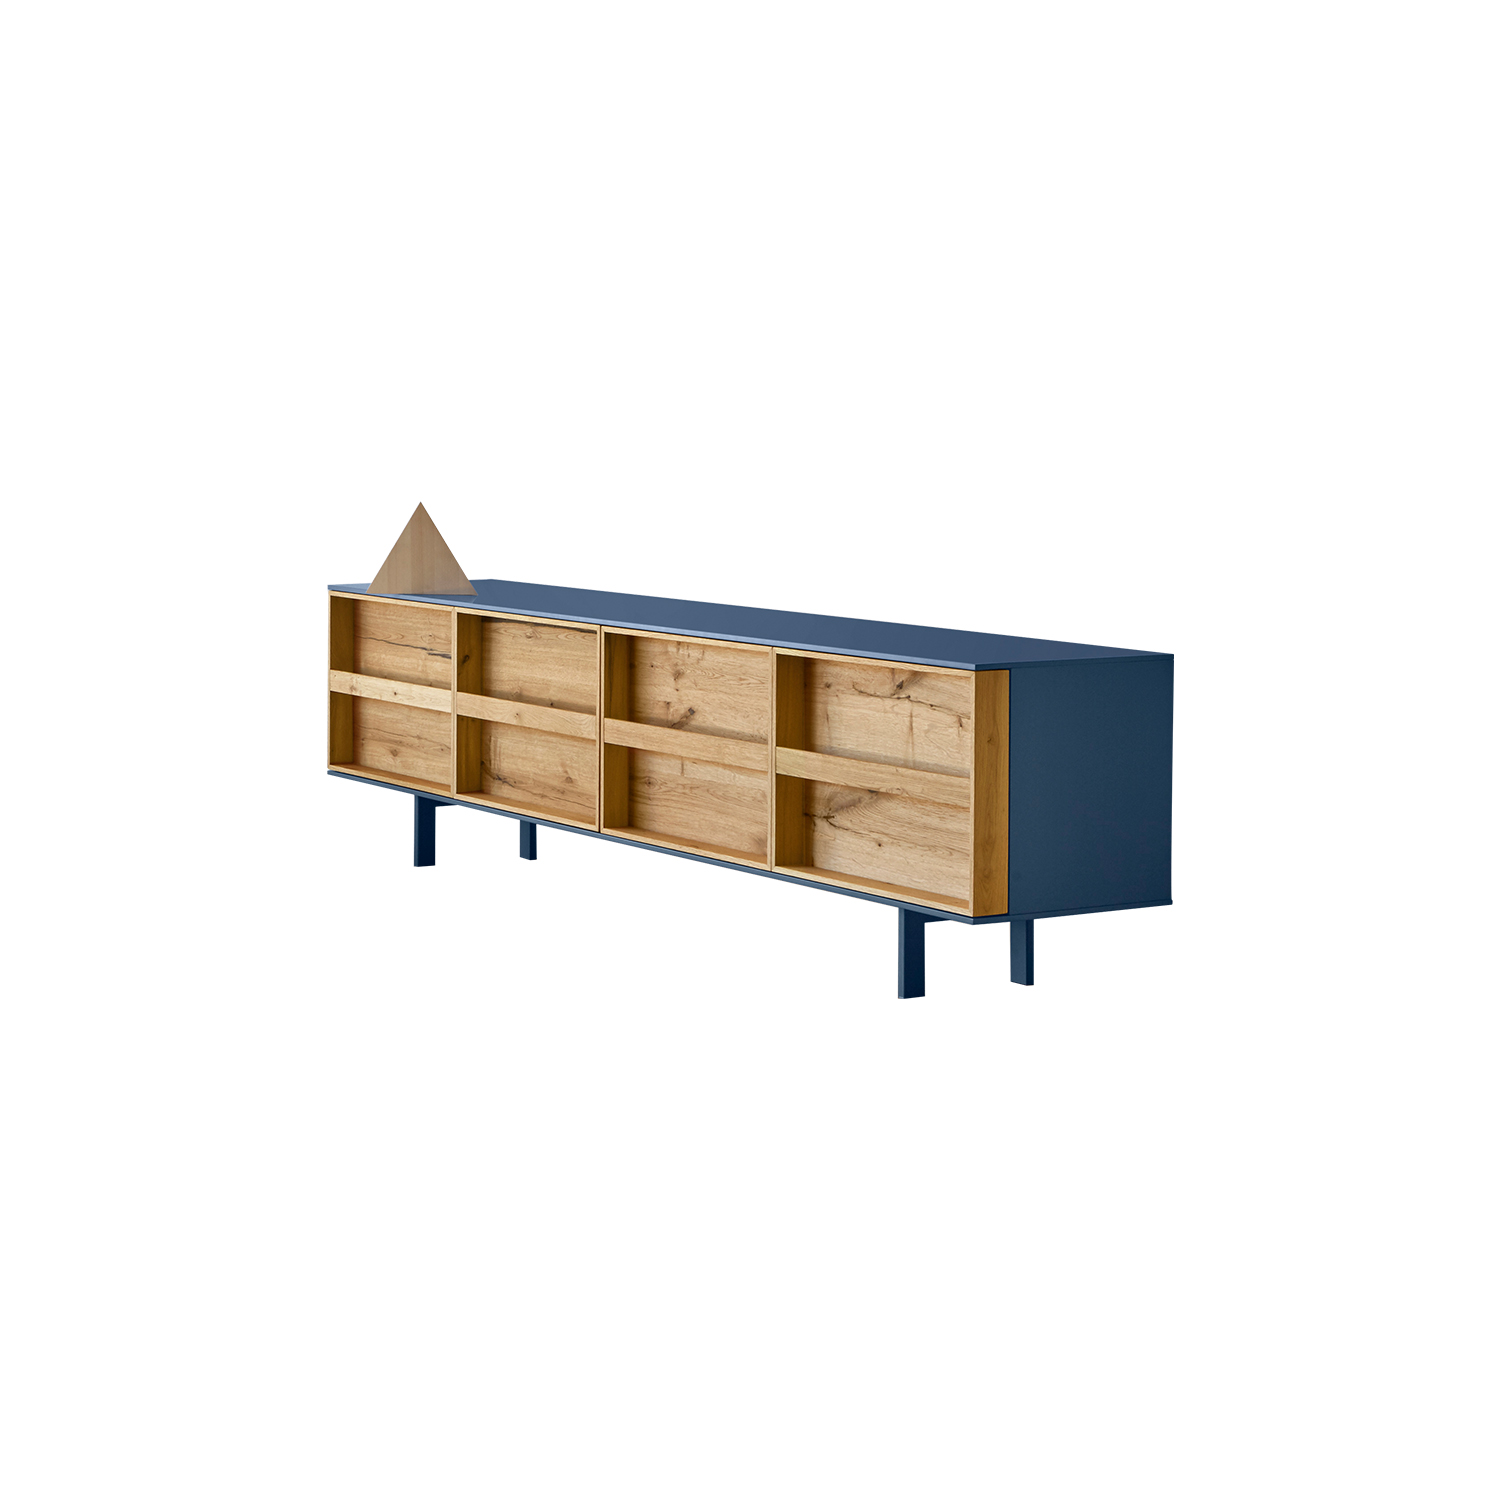 Ramblas Sideboard Large - Evocative, with thin wooden lines and a minimalist charm. The sideboard is characterized by doors designed as a library and equipped with an effective book-like opening system. It is available in three different sizes.